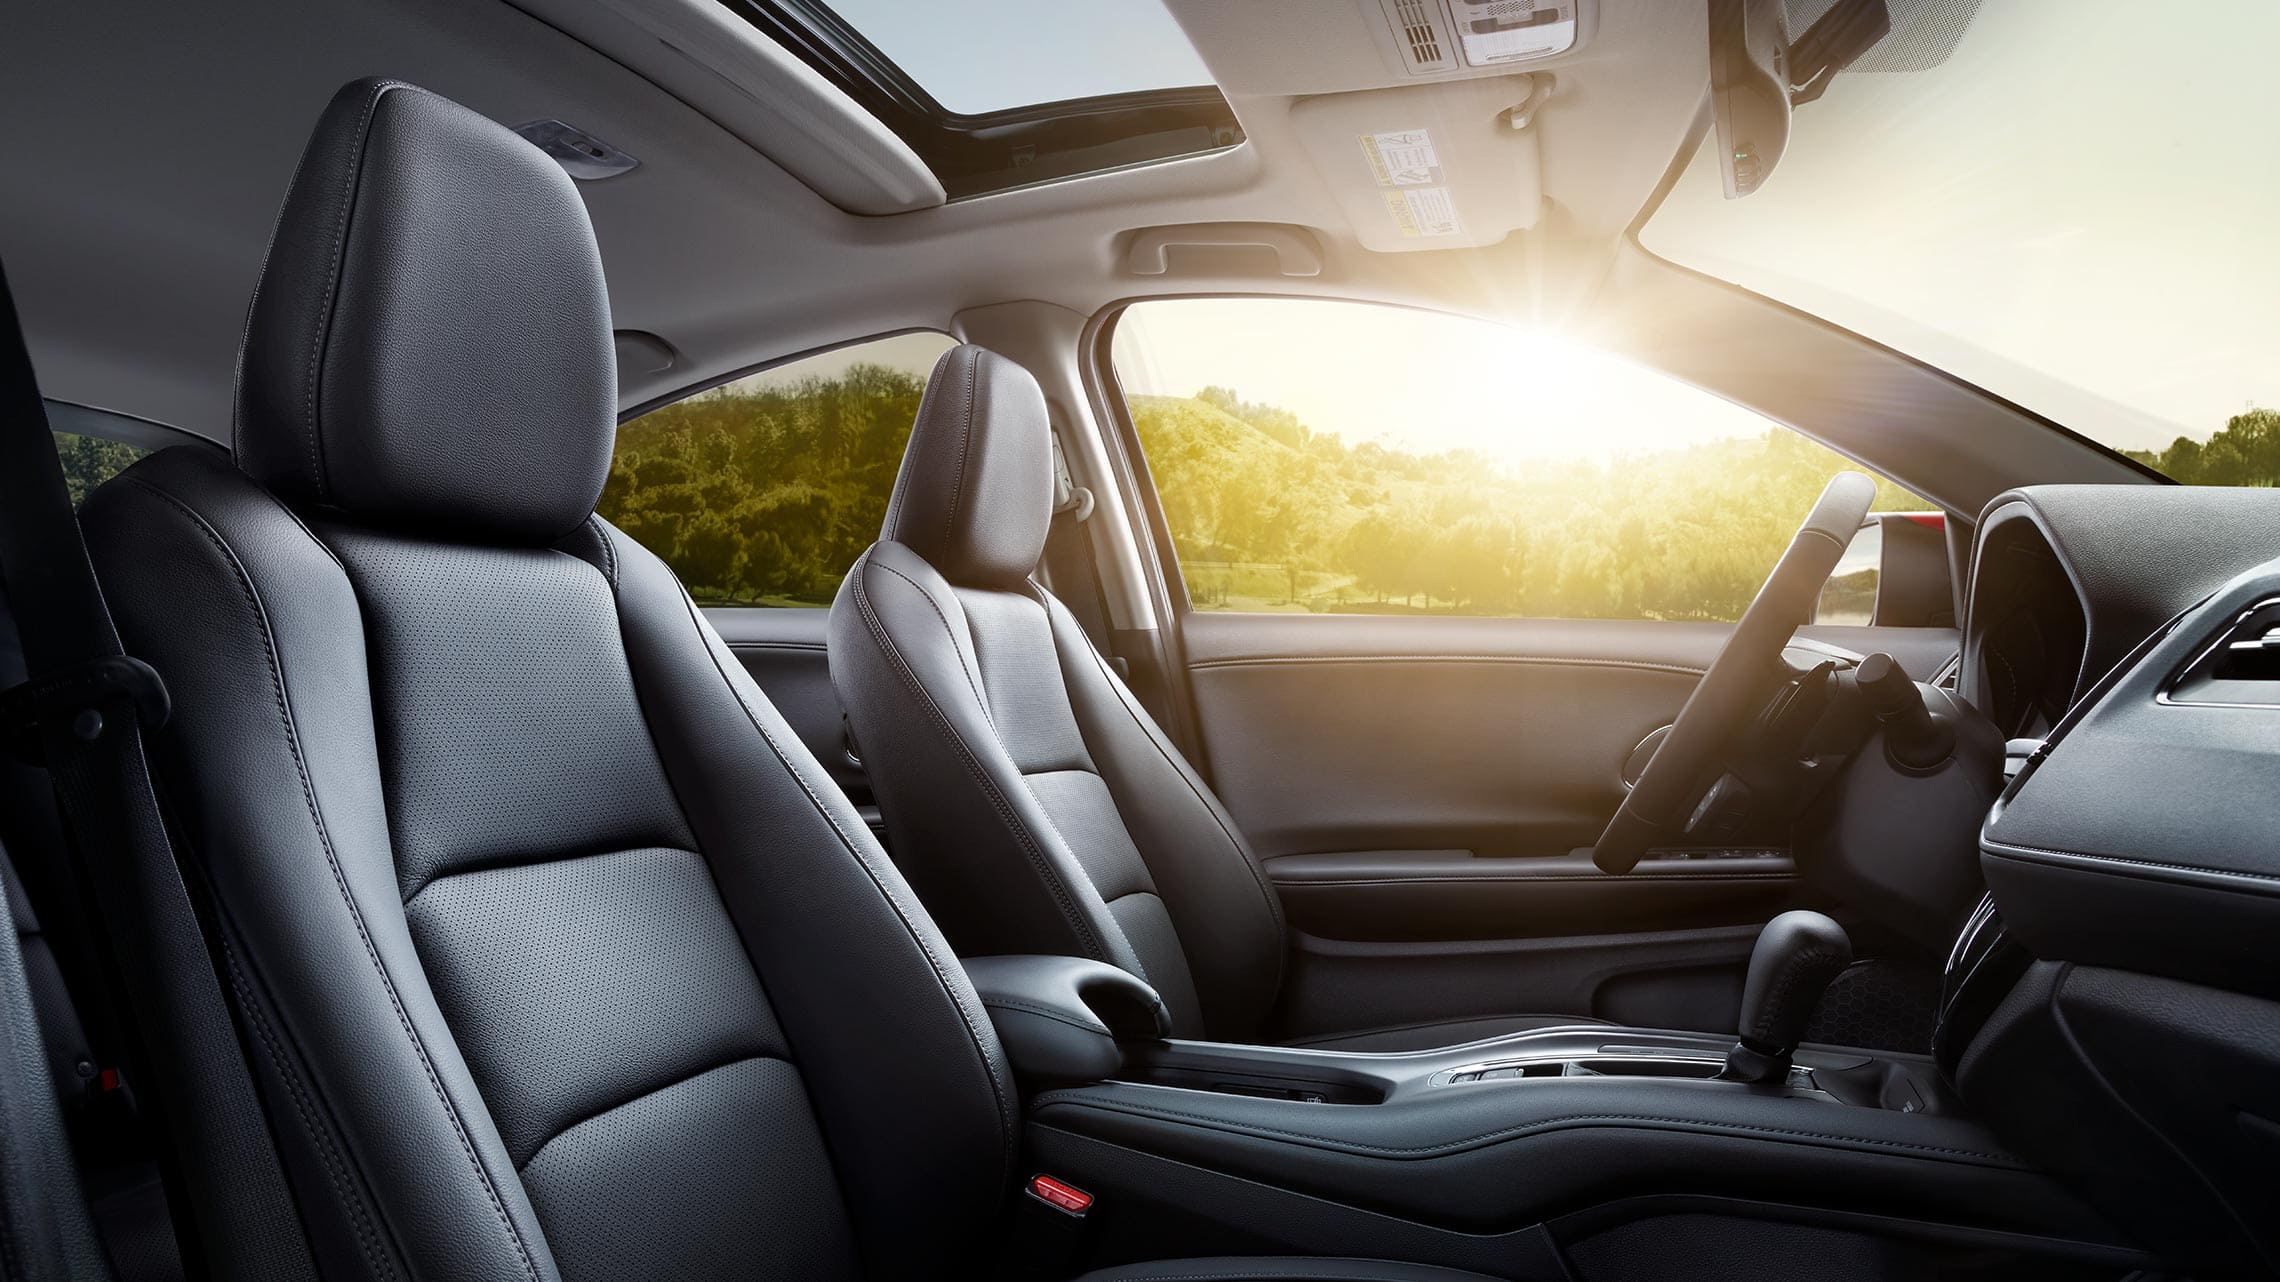 Interior passenger-side view of the 2020 Honda HR-V Touring seats in Black Leather.